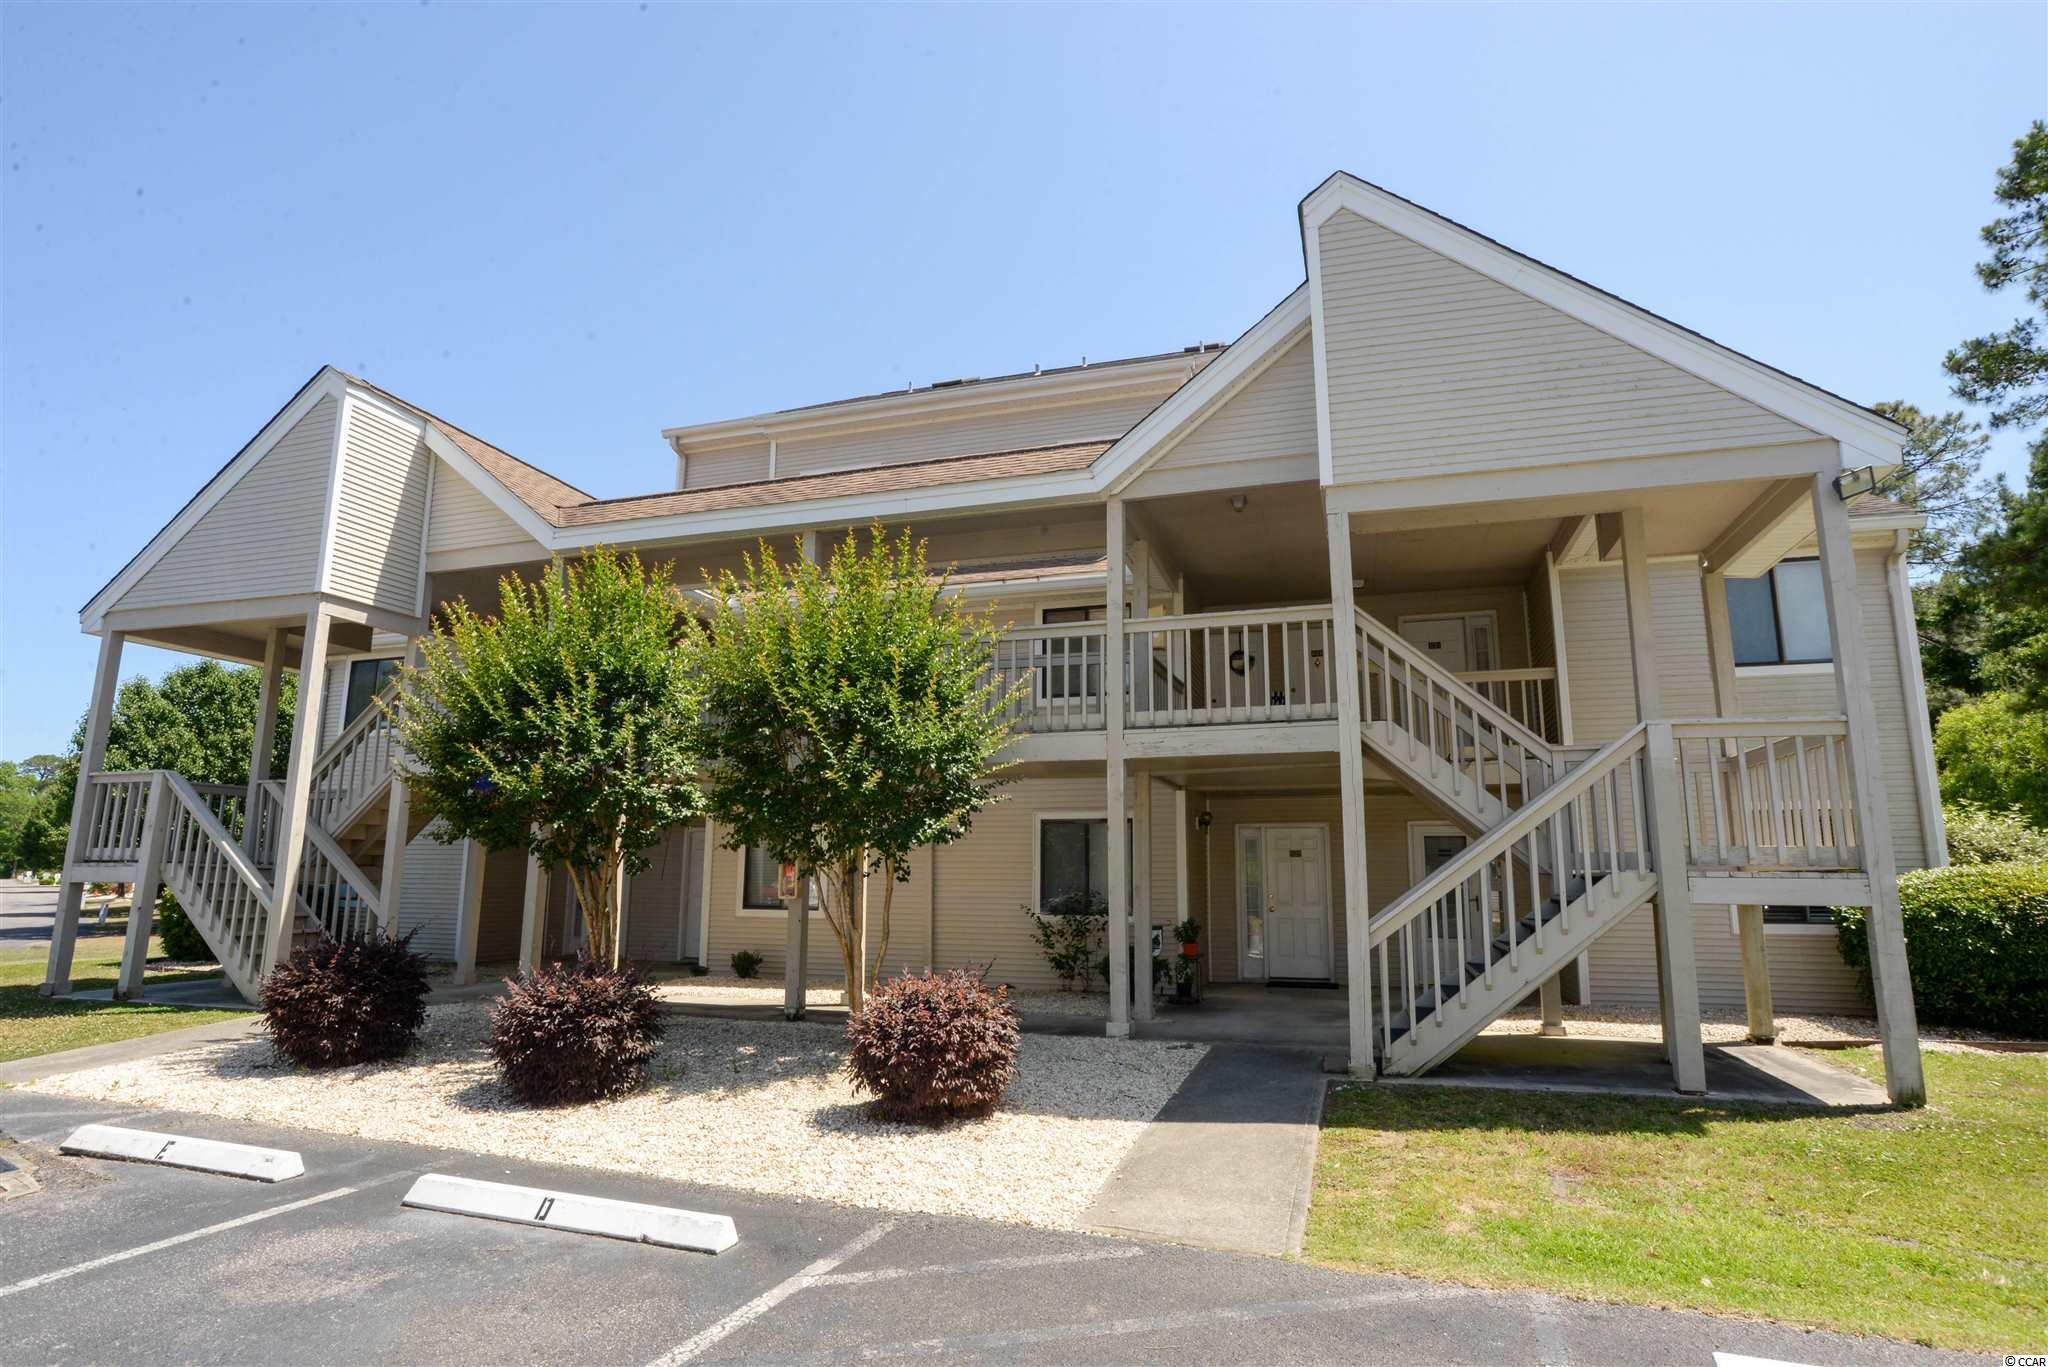 Wow! Open and airy, large 2 bedroom, 2 bathroom, second floor, 2 level, end unit condo at Baytree IX in Little River. Over 1200 heated square feet, gorgeous LVP flooring throughout, large bedrooms, high ceilings, huge kitchen, updated cabinets, kitchen island, stainless steel appliances, nice colors, well cared for, large pantry, extra large loft bedroom with large walk in closet and private bathroom. This building is tucked away and Baytree has lots of well-manicured community space, outdoor pool, indoor pool, and is only a few miles to the beach.